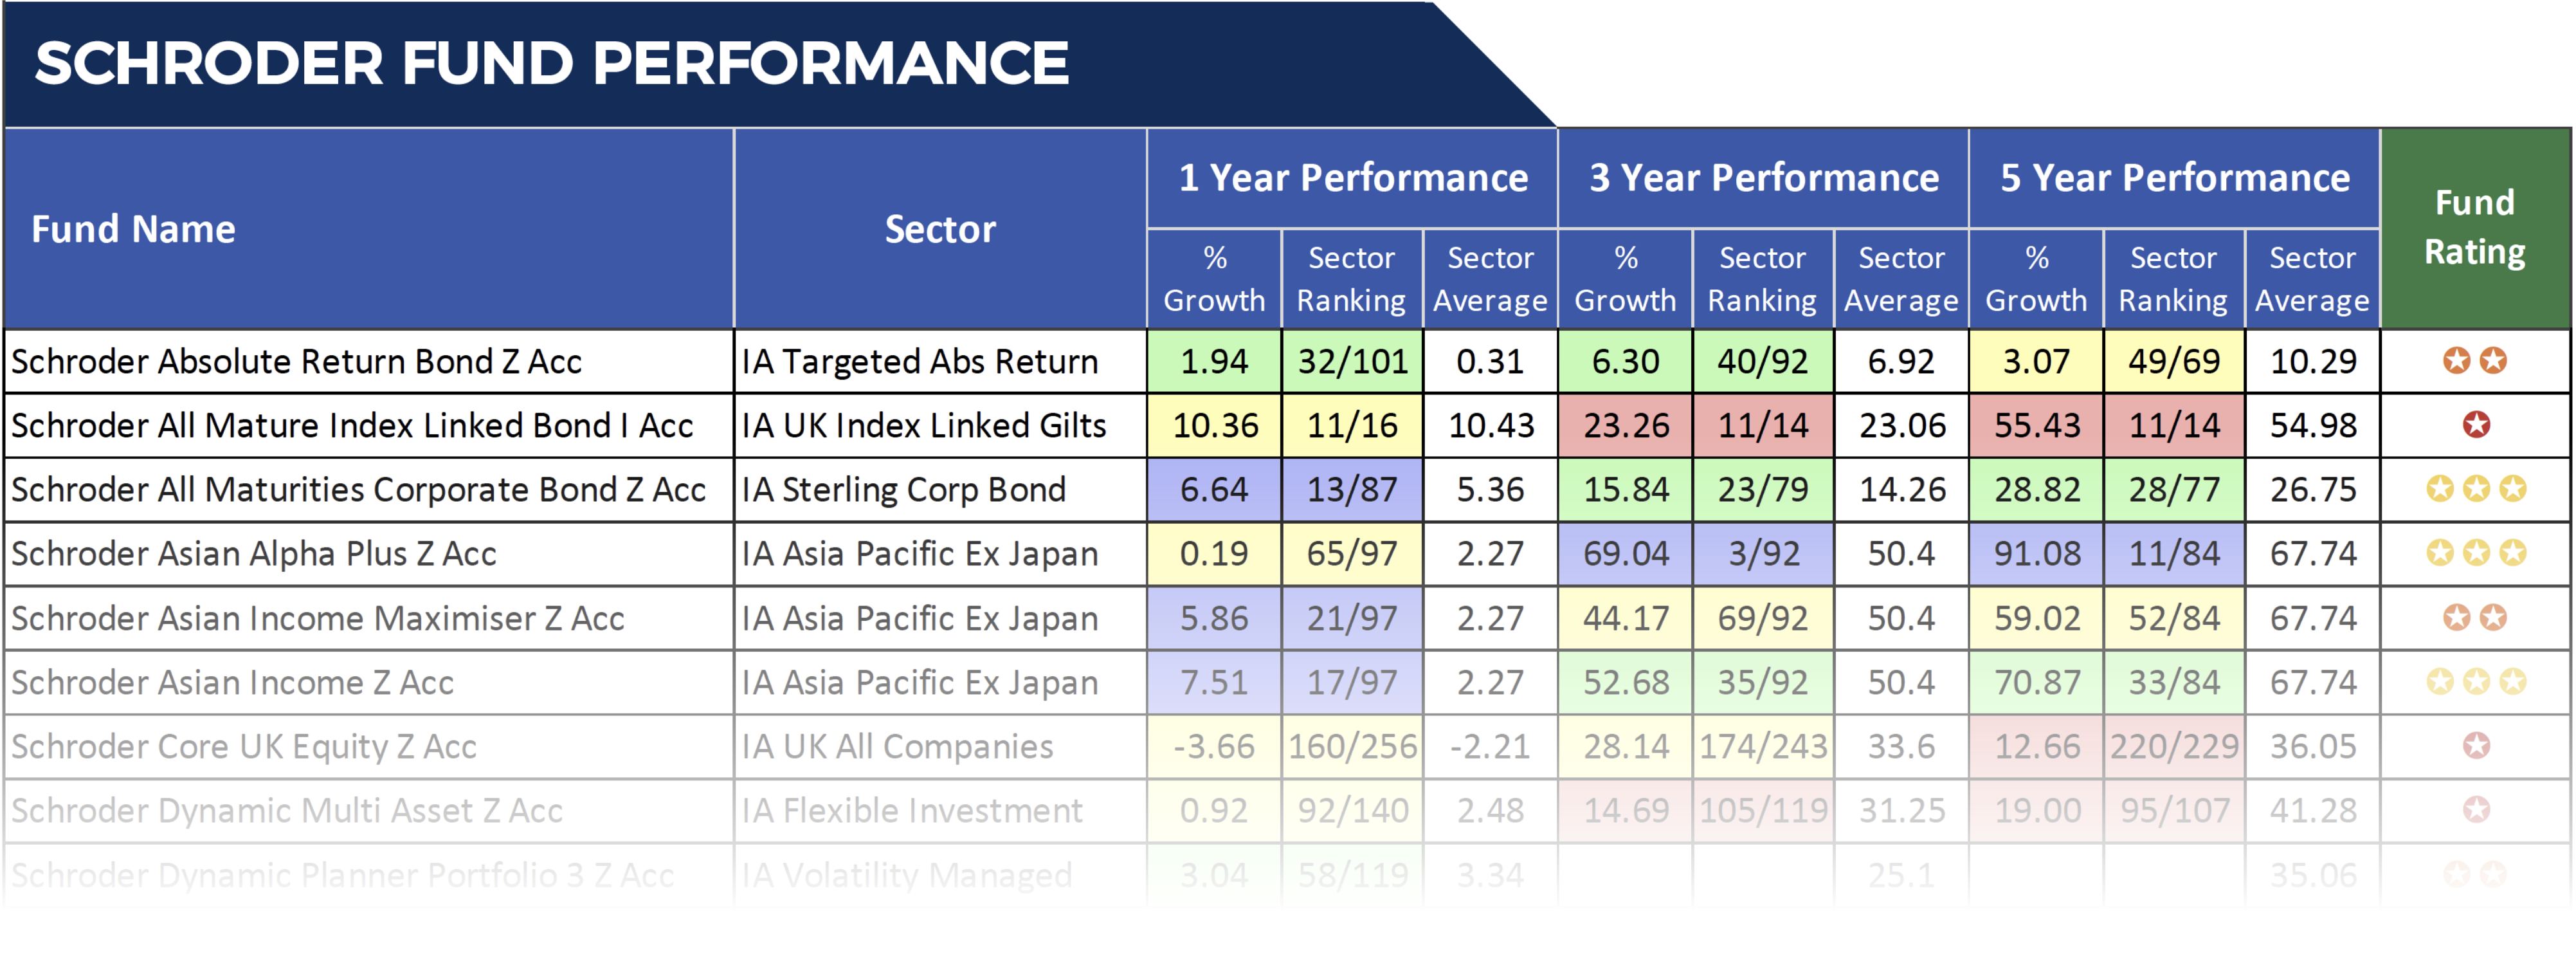 Schroder fund performance